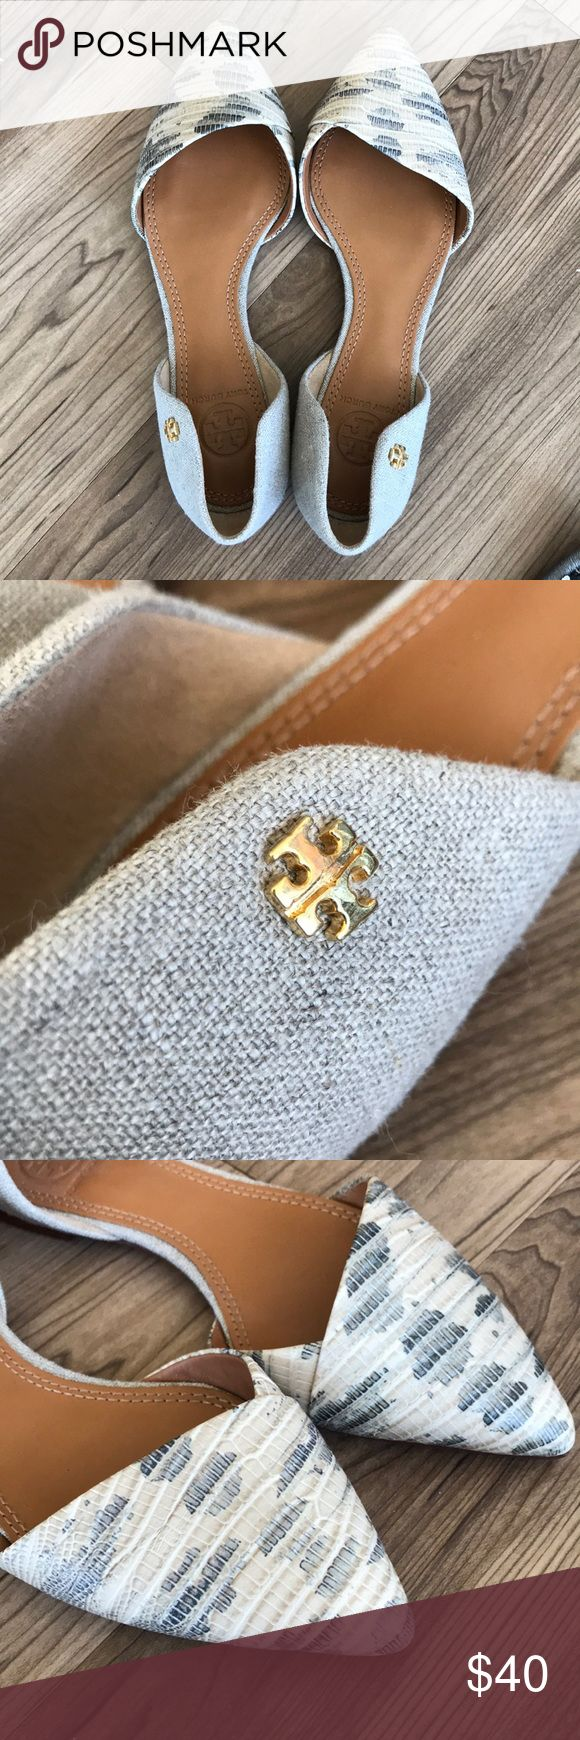 Tory Burch pointed toe snakeskin flats Gorgeous Tory Burch pointed toe snakeskin two-toned grey flats with tweed heels. Gold enamel Tory Burch symbol. Mint condition -Size 6M Tory Burch Shoes Flats & Loafers